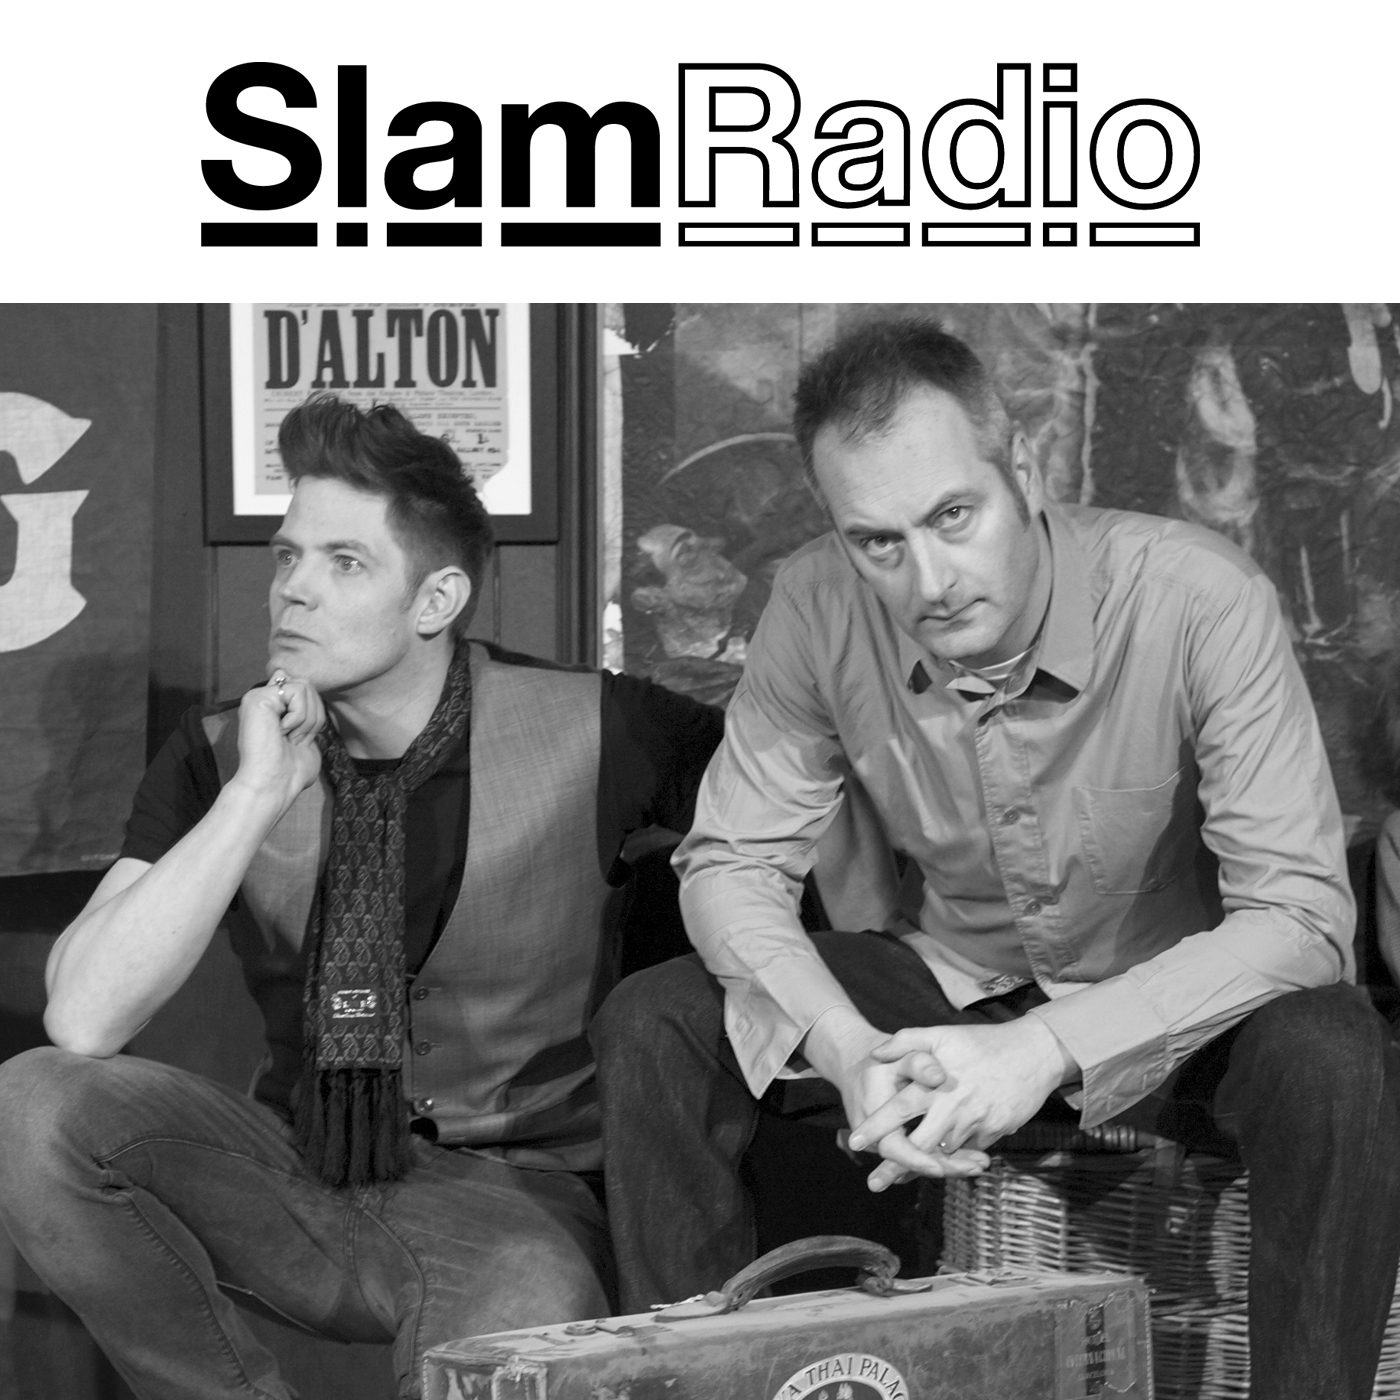 Slam Radio